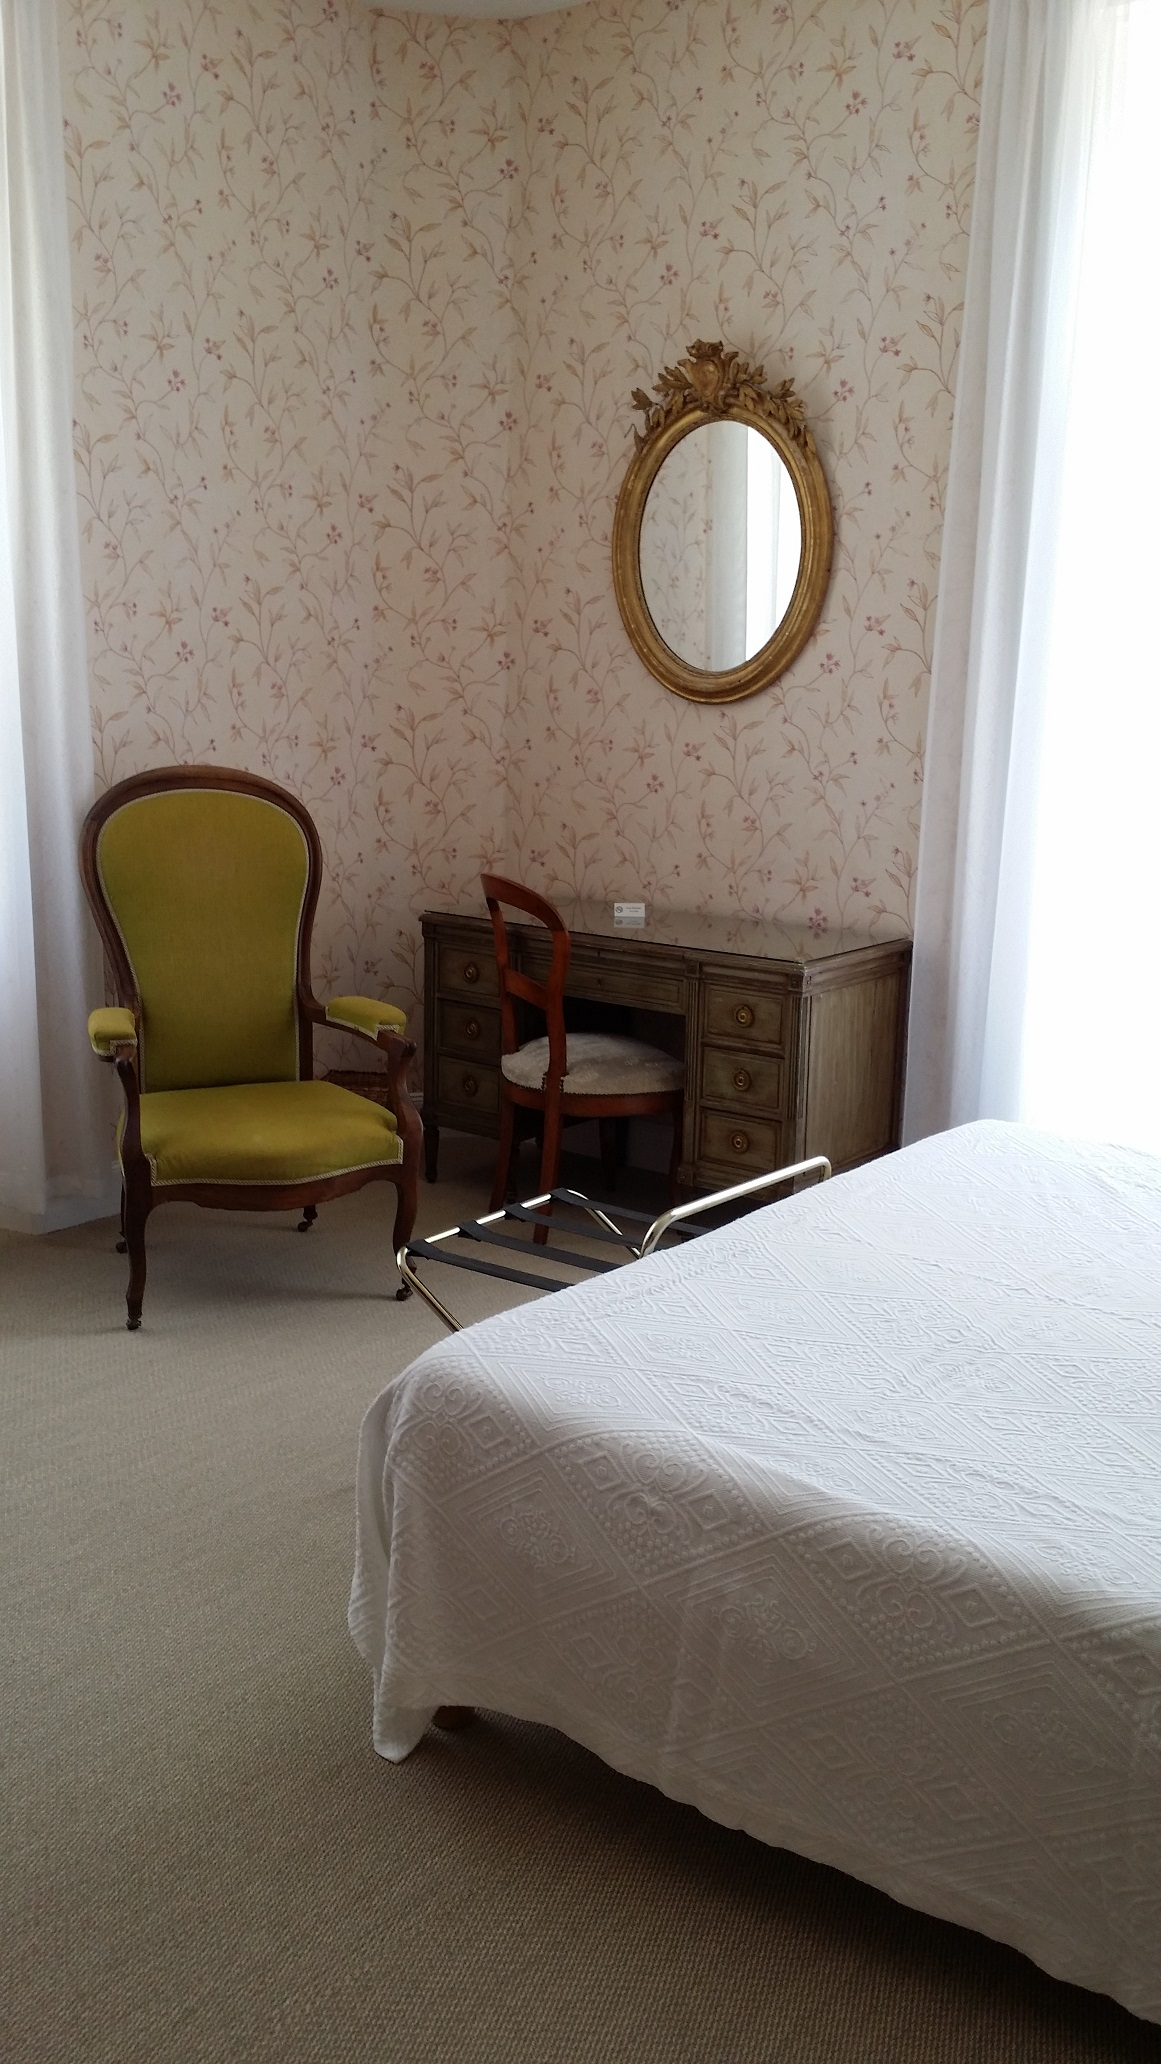 chambre_hotel_vintage